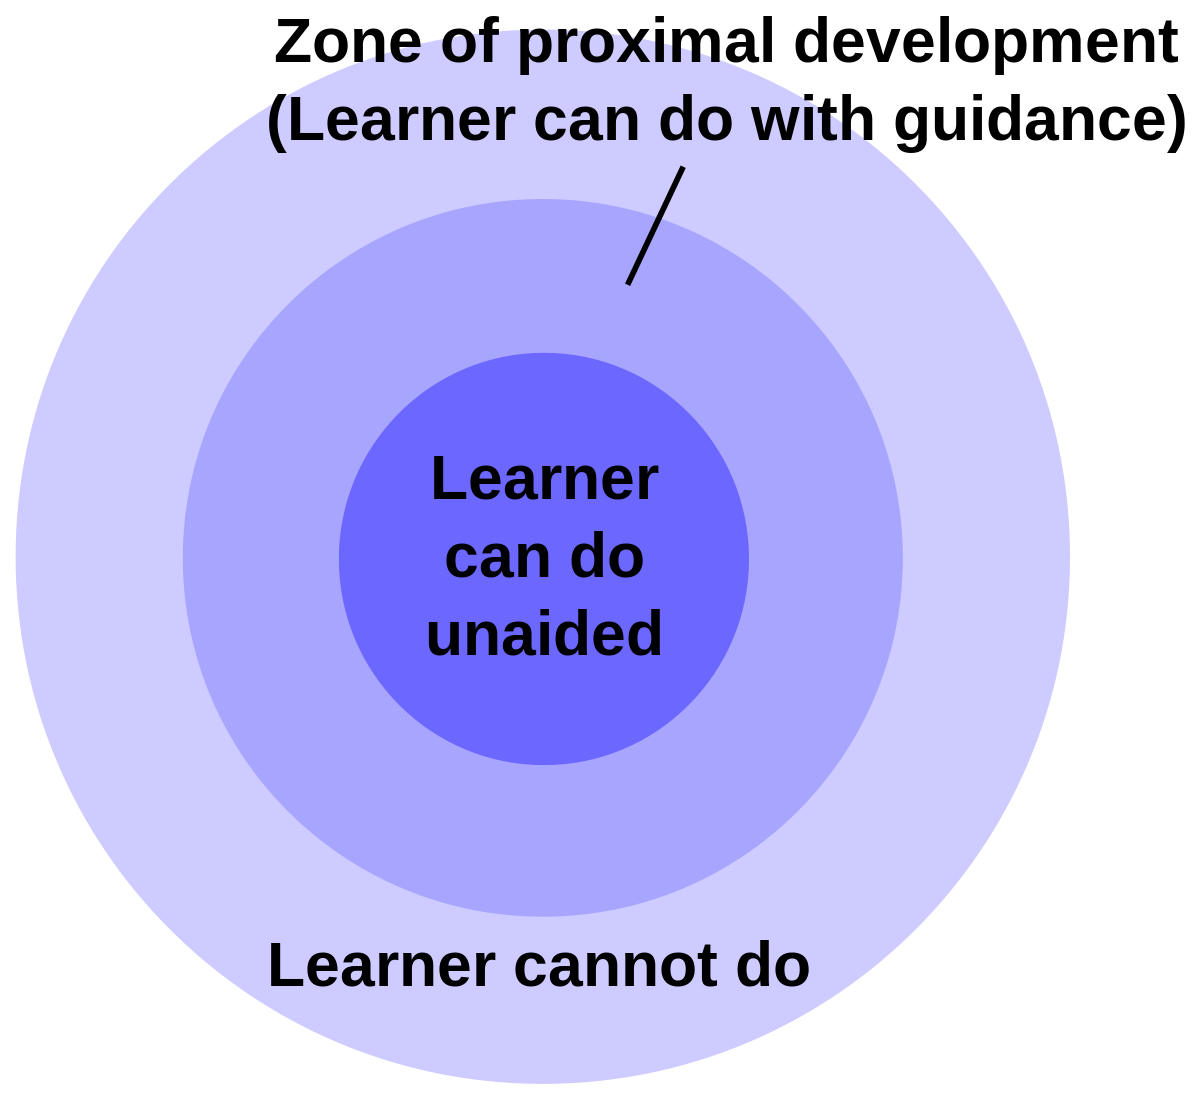 """graph that reads: """"zone of proximal development (learner can do with guidance) on the outside of a circle with """"Learner can do unaided"""" on the inside of the circle"""